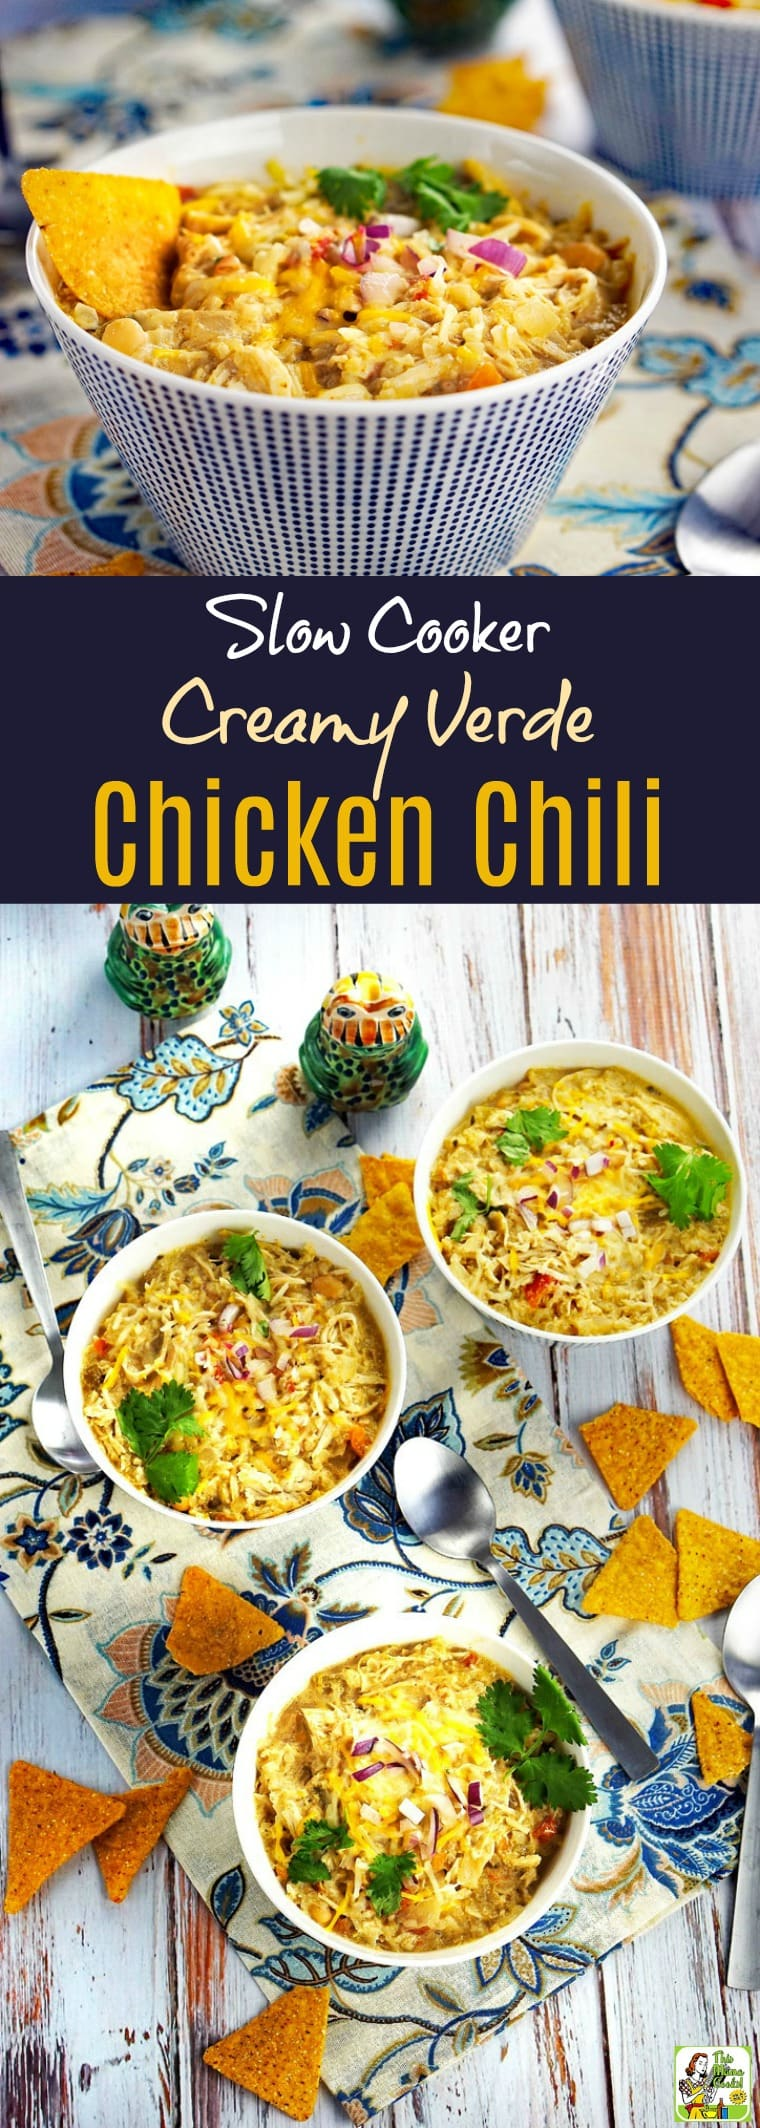 Slow Cooker Creamy Verde Chicken Chili